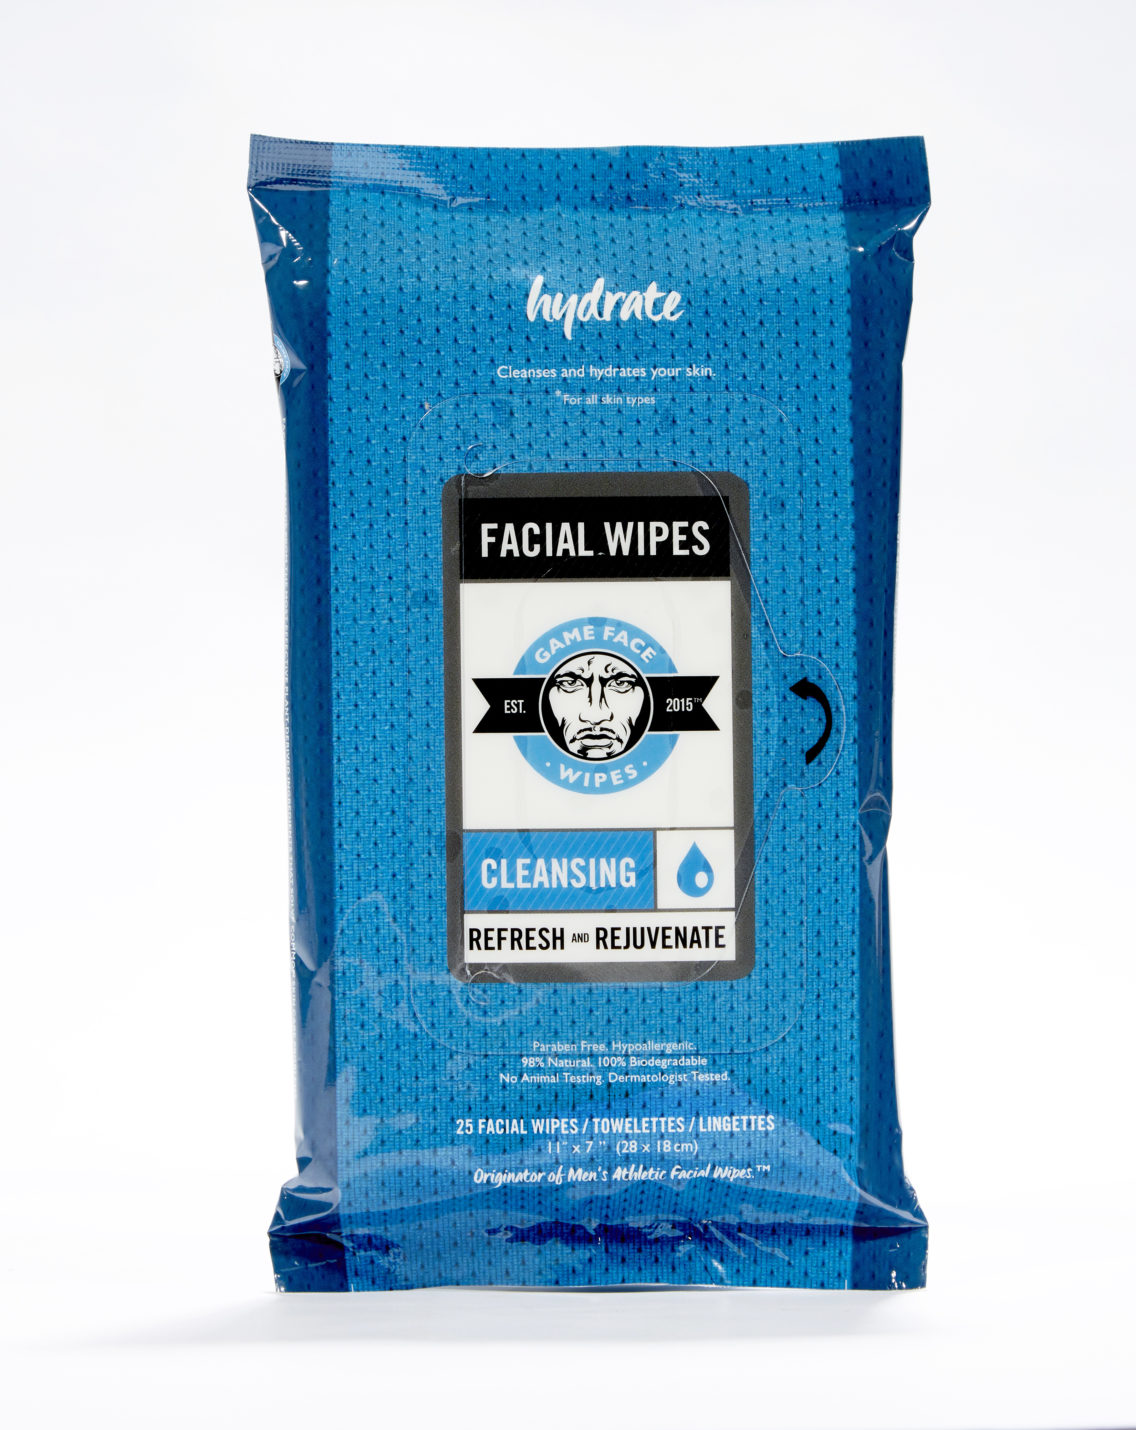 Game On! #GameFaceWipes #FaceWipes #MensGrooming